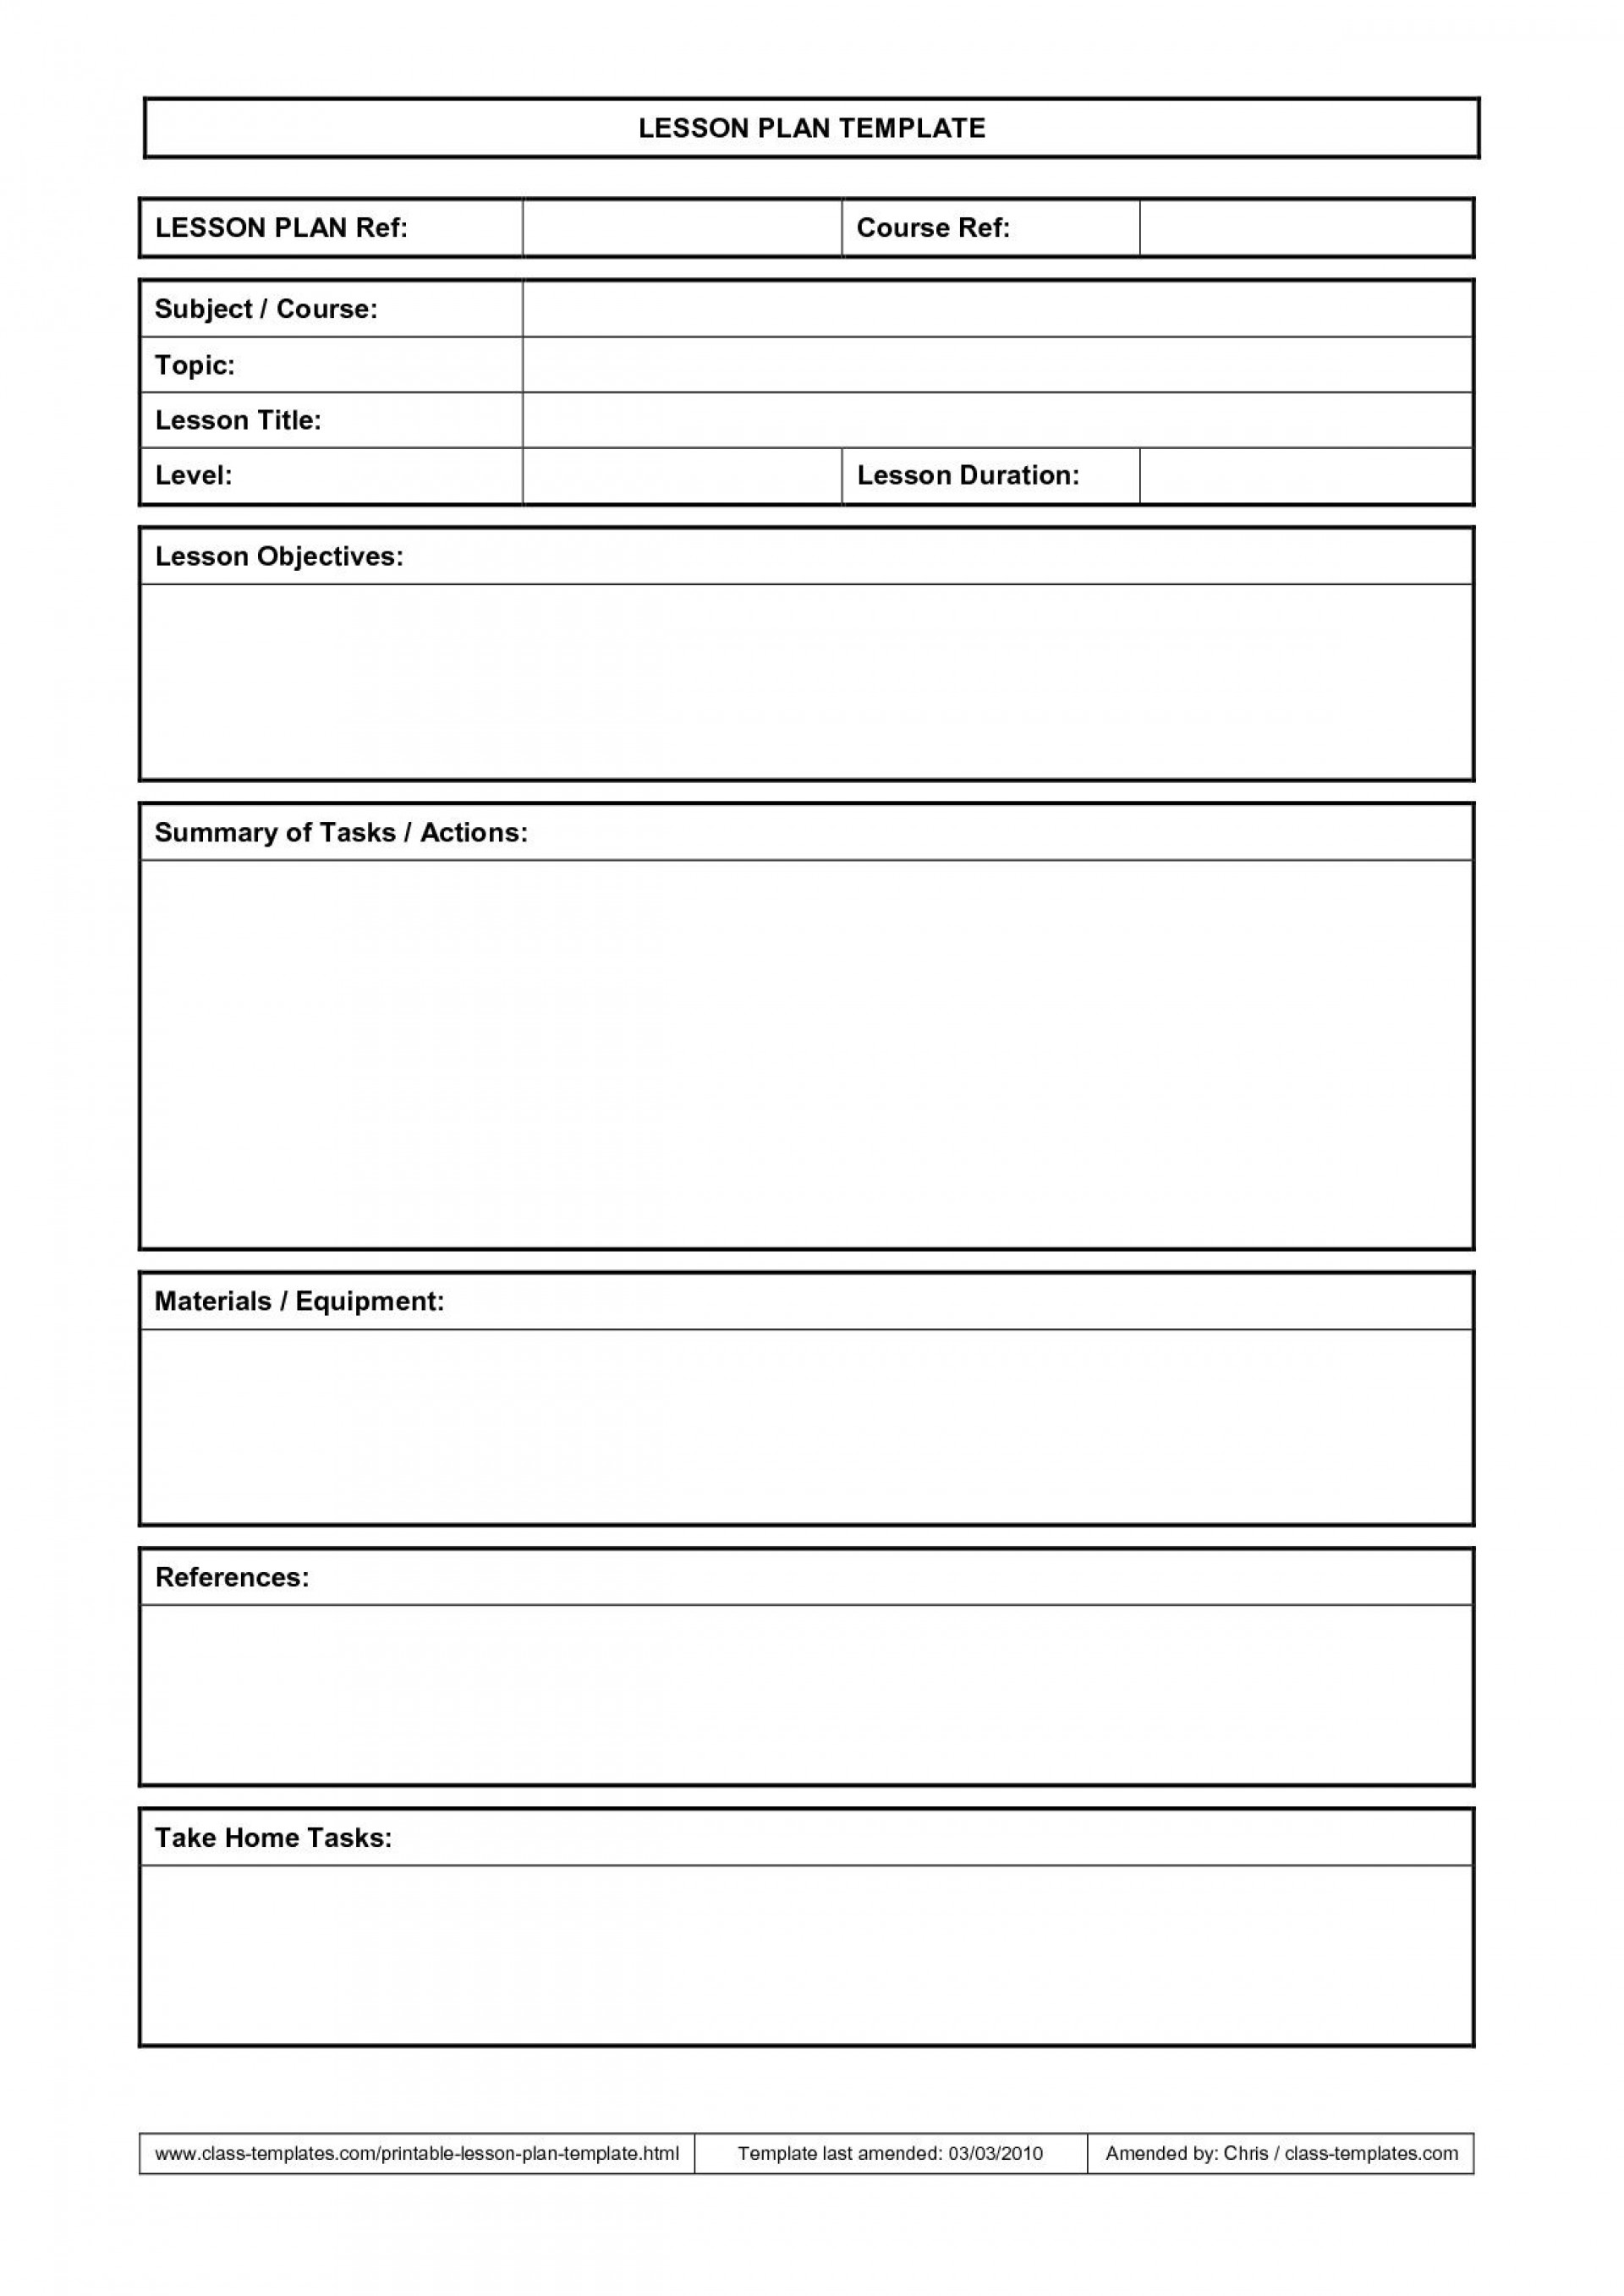 003 Awesome Lesson Plan Outline Template Idea  Sample Format Pdf Blank Free Printable1920